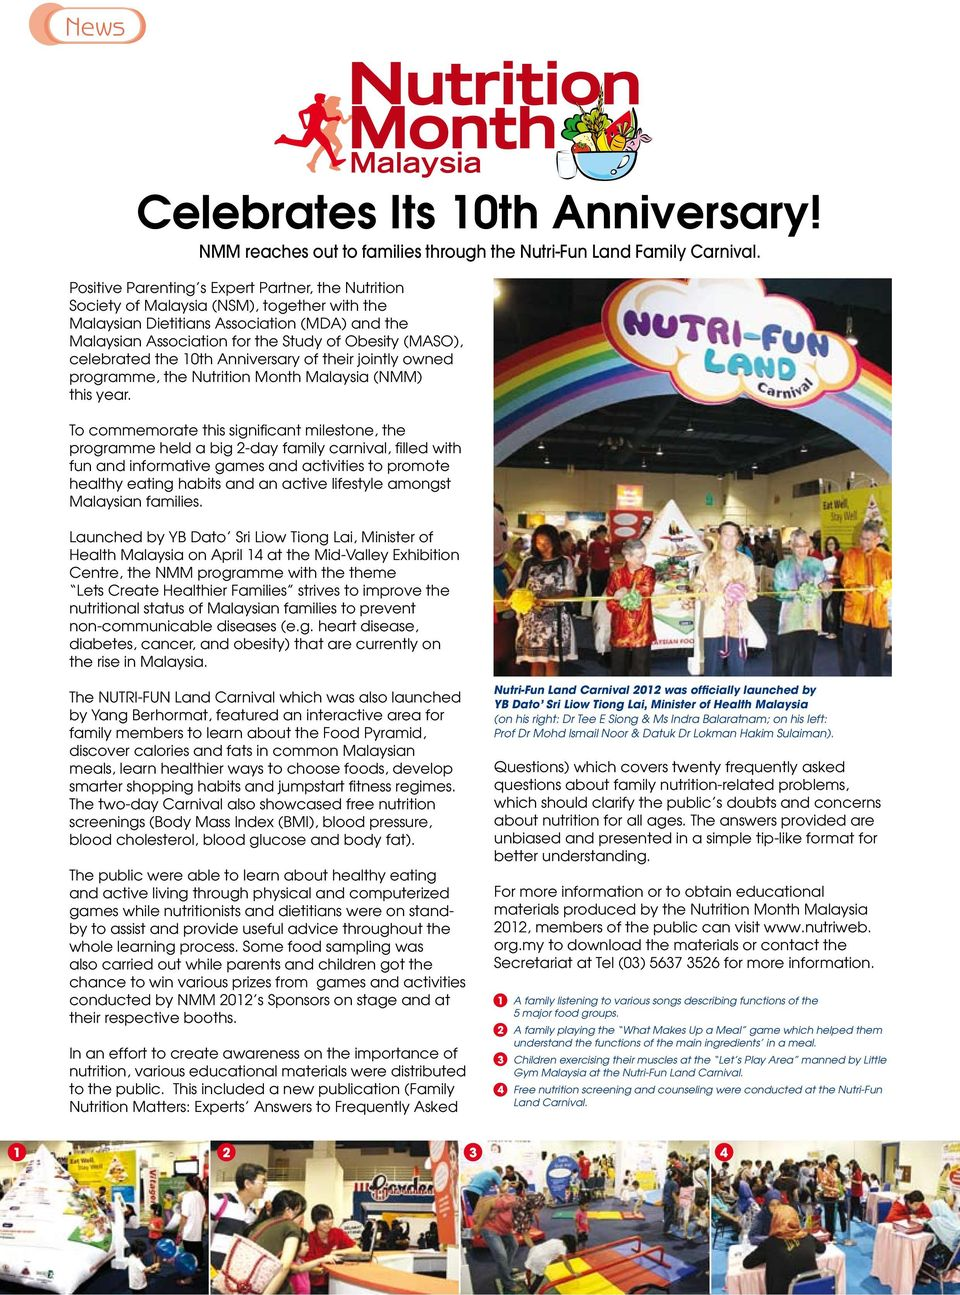 celebrated the 10th Anniversary of their jointly owned programme, the Nutrition Month Malaysia (NMM) this year.